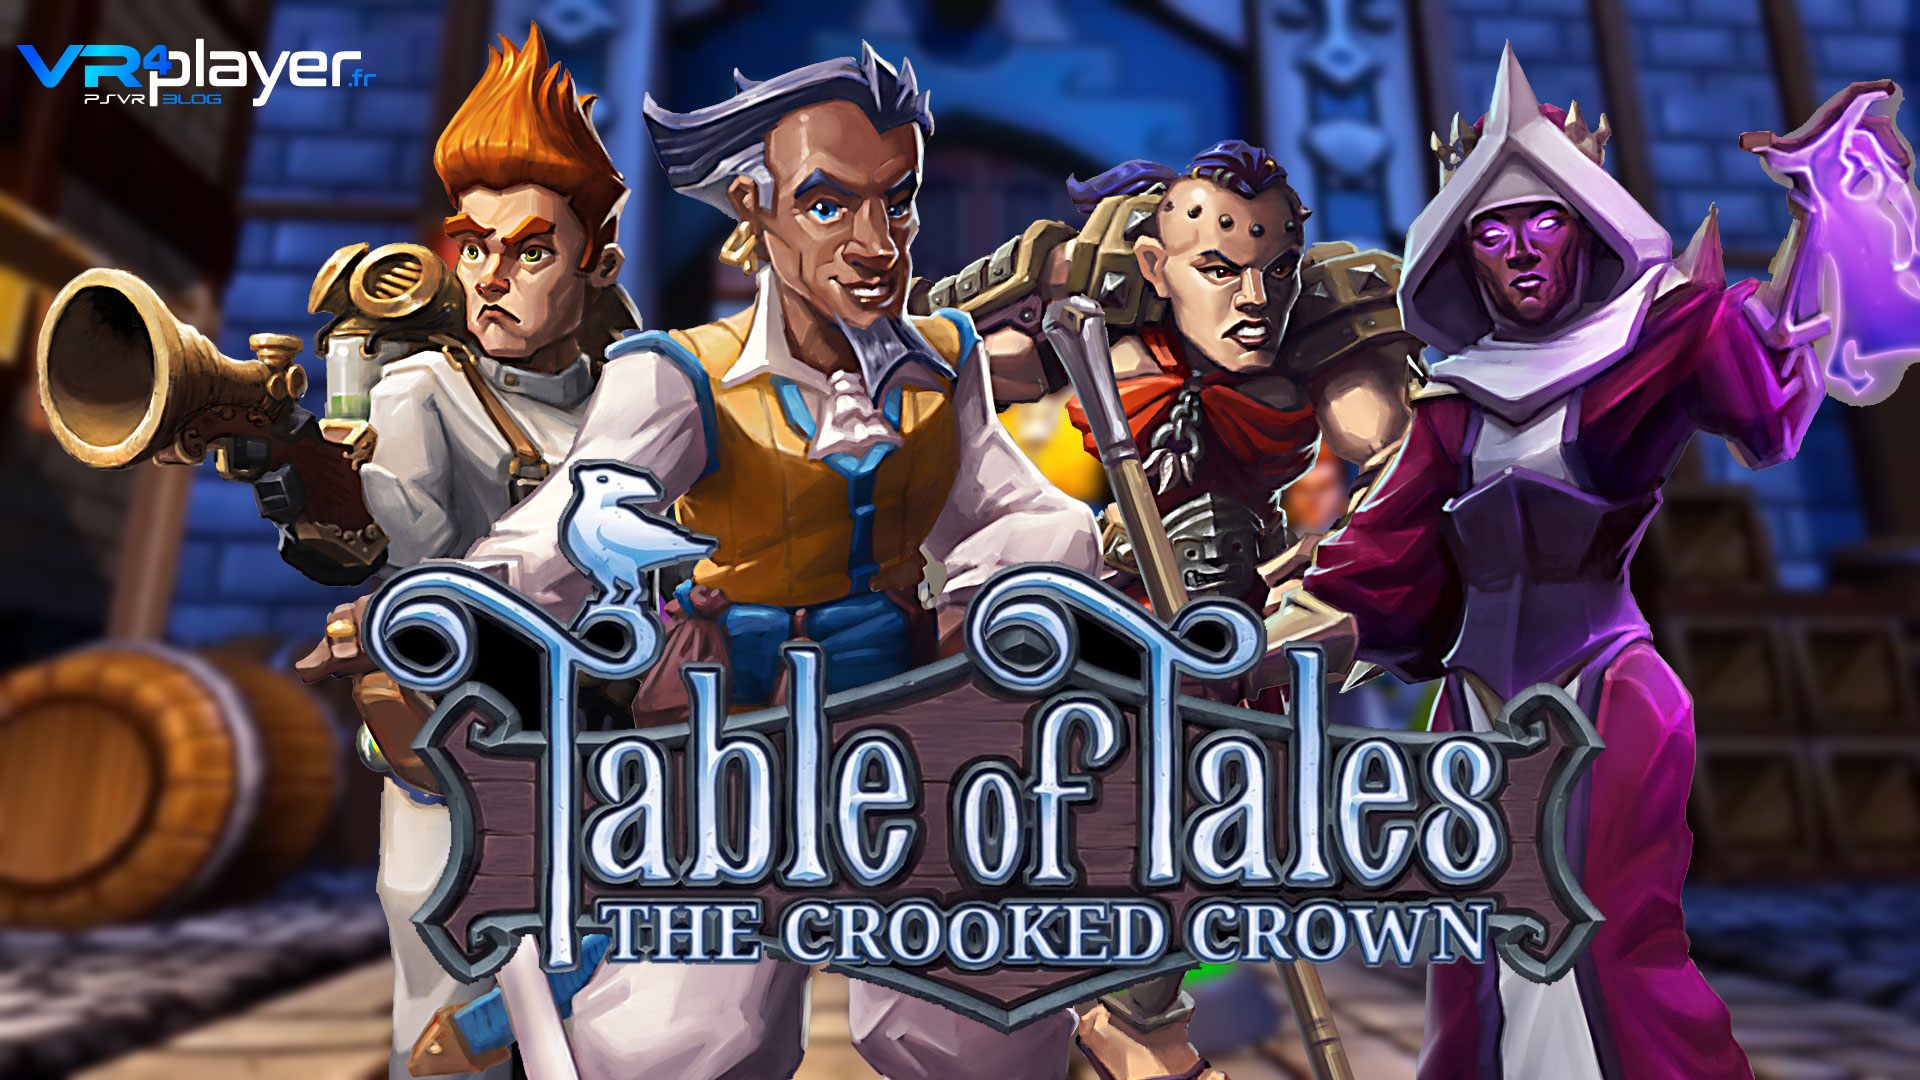 Table of Tales vr4player.fr